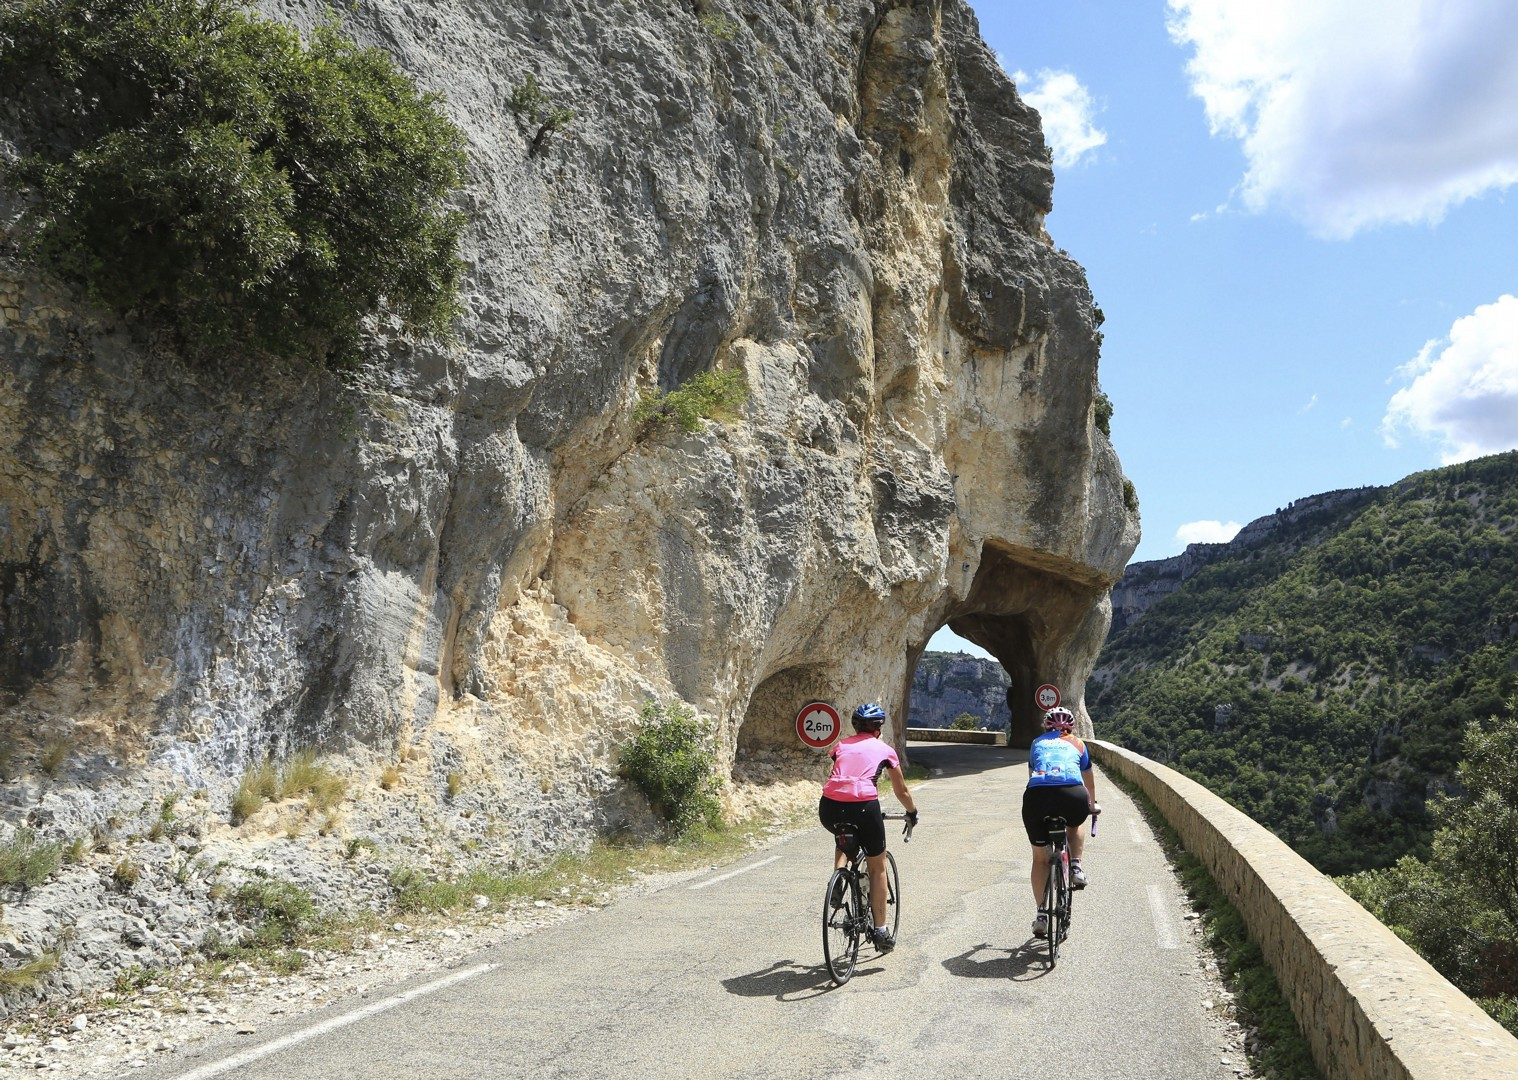 france-ardeche-canyon.jpg - France - Ardeche to Carcassonne - Guided Road Cycling Holiday - Road Cycling